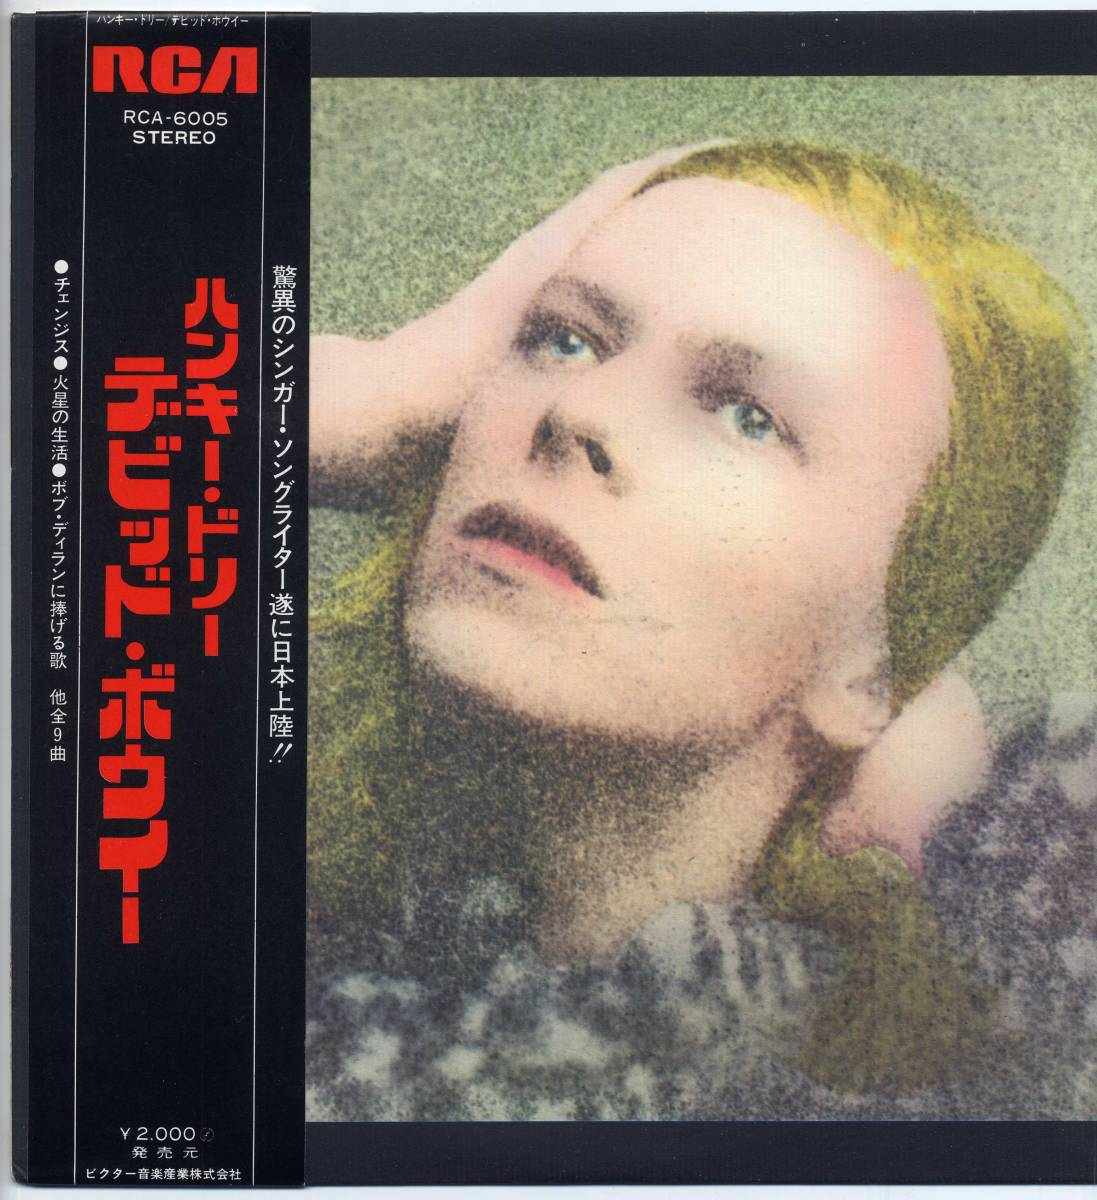 LP☆デビッド・ボウイー/ハンキー・ドリー(初回黒帯付/'72/SSW)☆David Bowie/Hunky Dory/RCA-6005/WITH OBI/シンガー・ソングライター_画像2